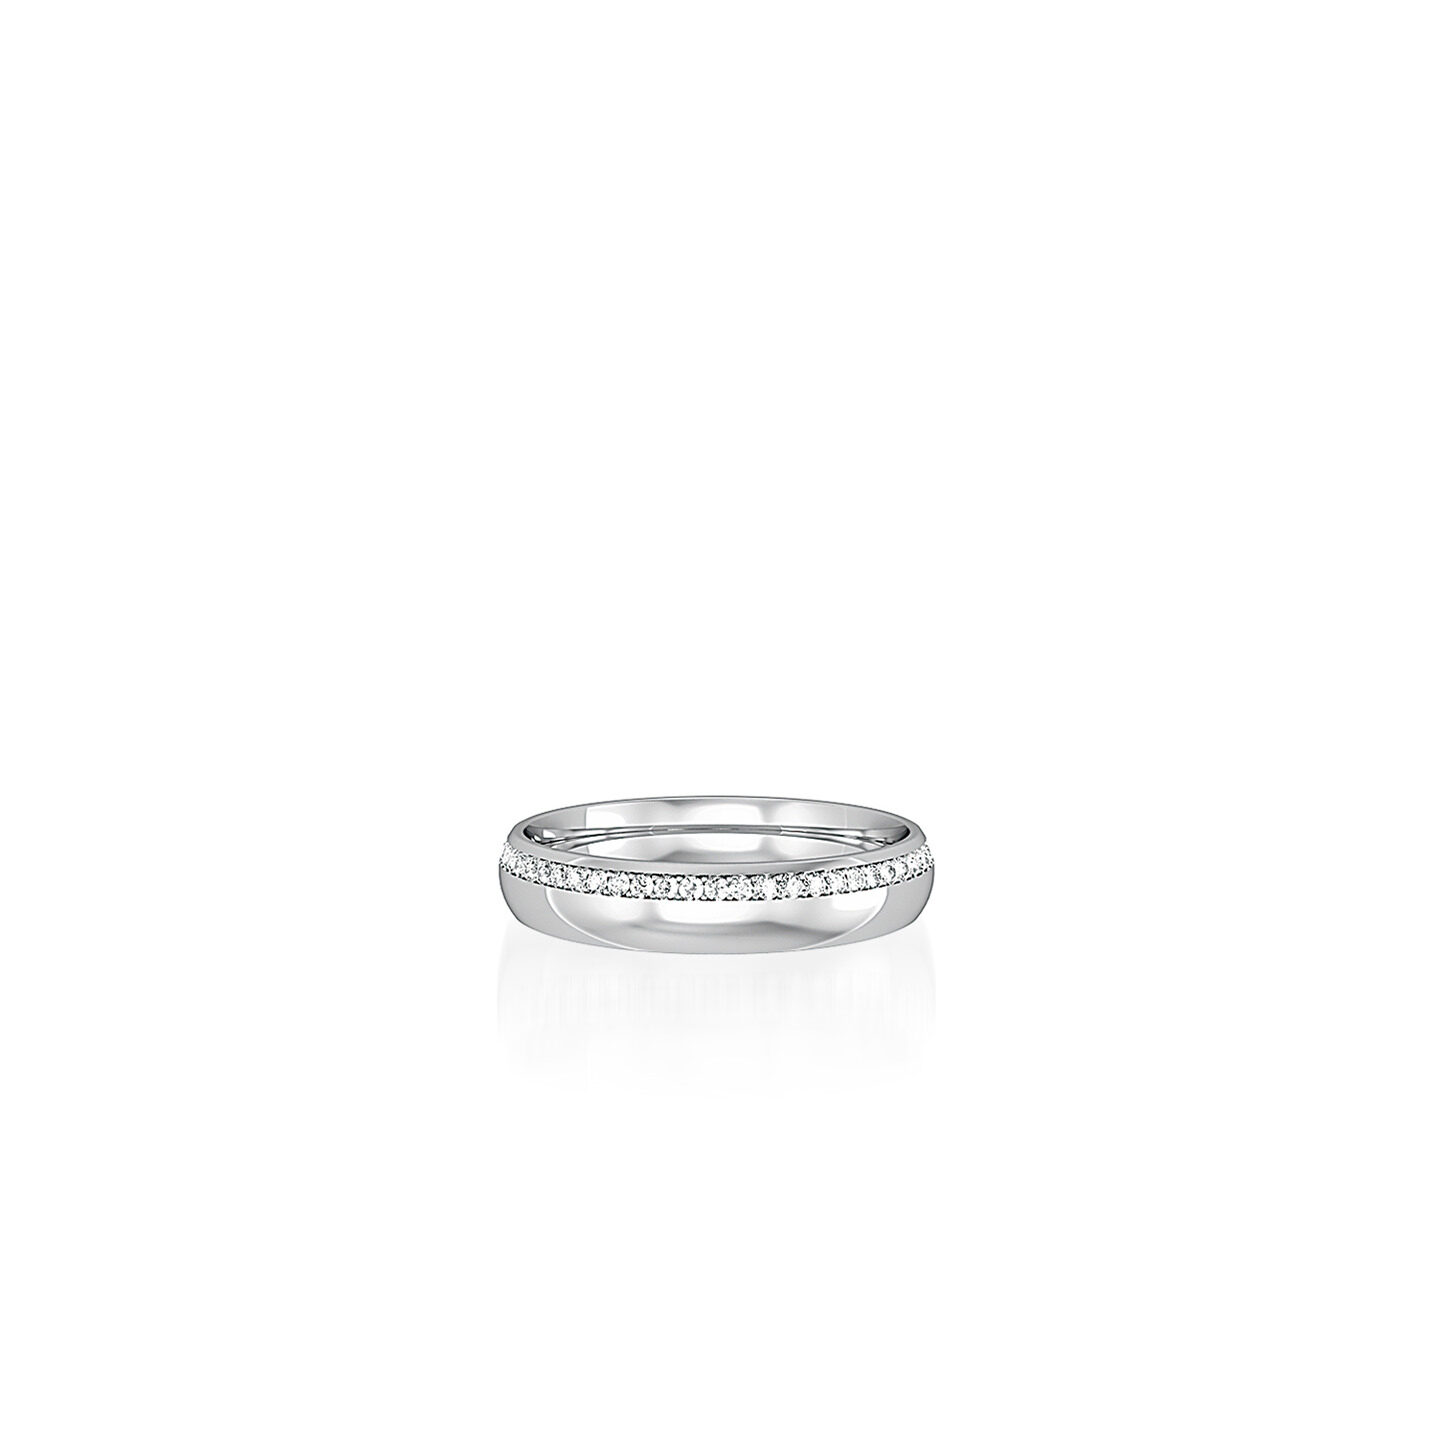 9ct. White Gold & Diamond Wedding Ring